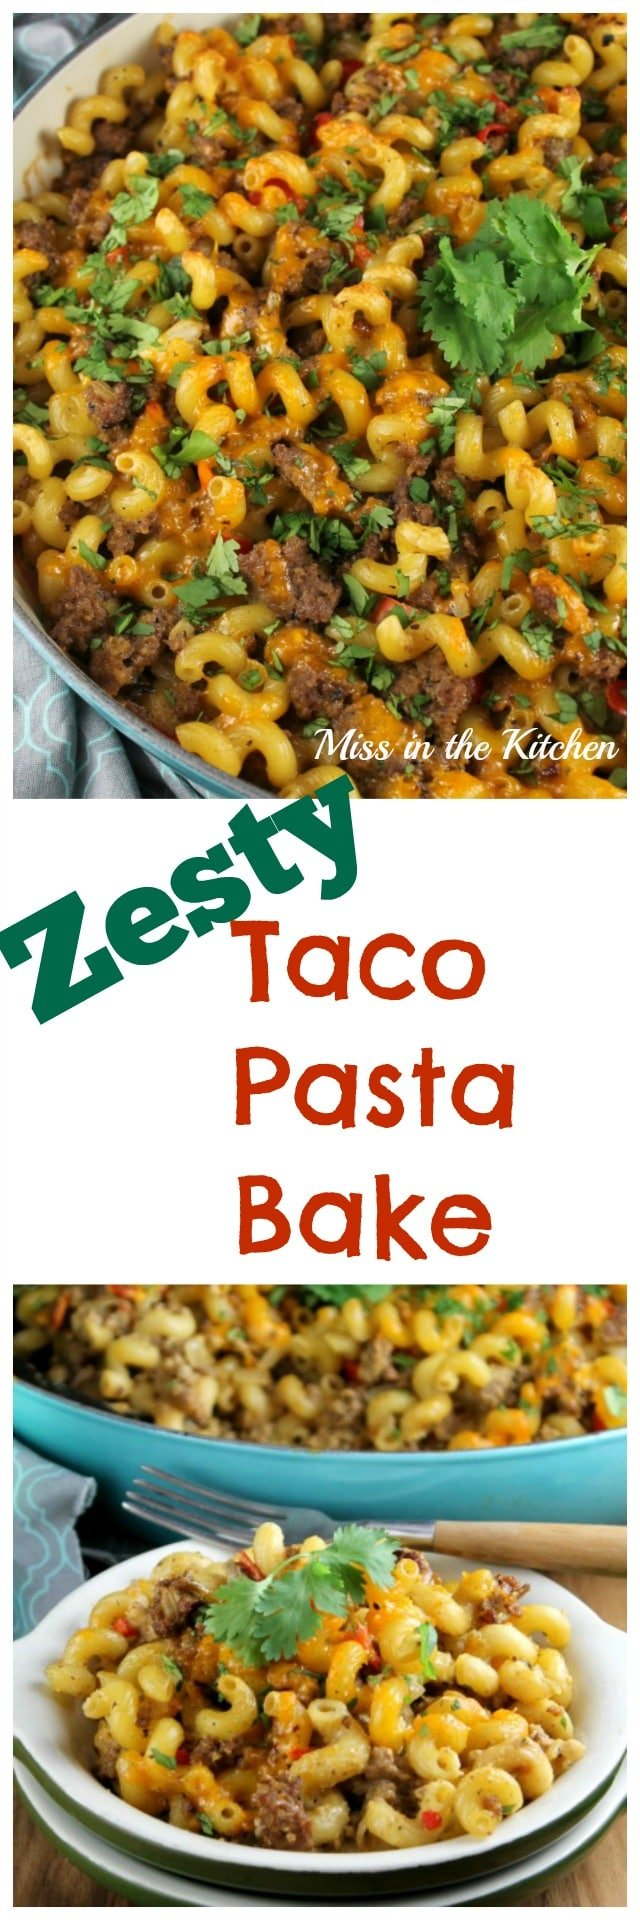 Zesty Taco Pasta Bake from MissintheKitchen.com